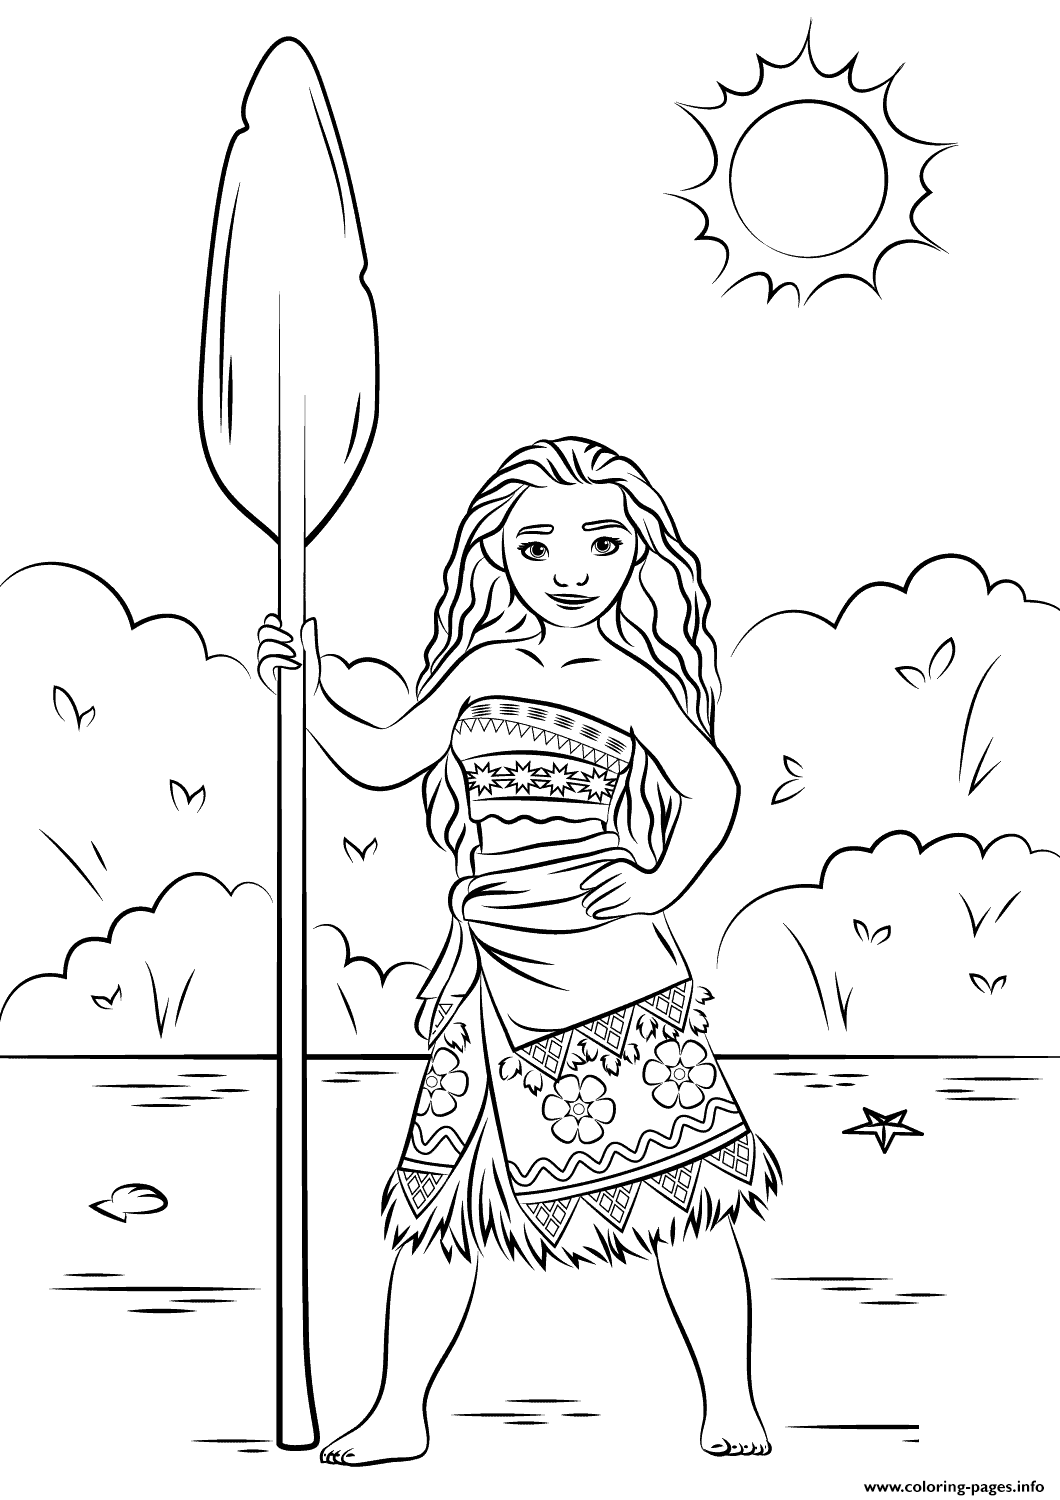 Print princess moana disney coloring pages | Vaiana-Moana Coloring ...